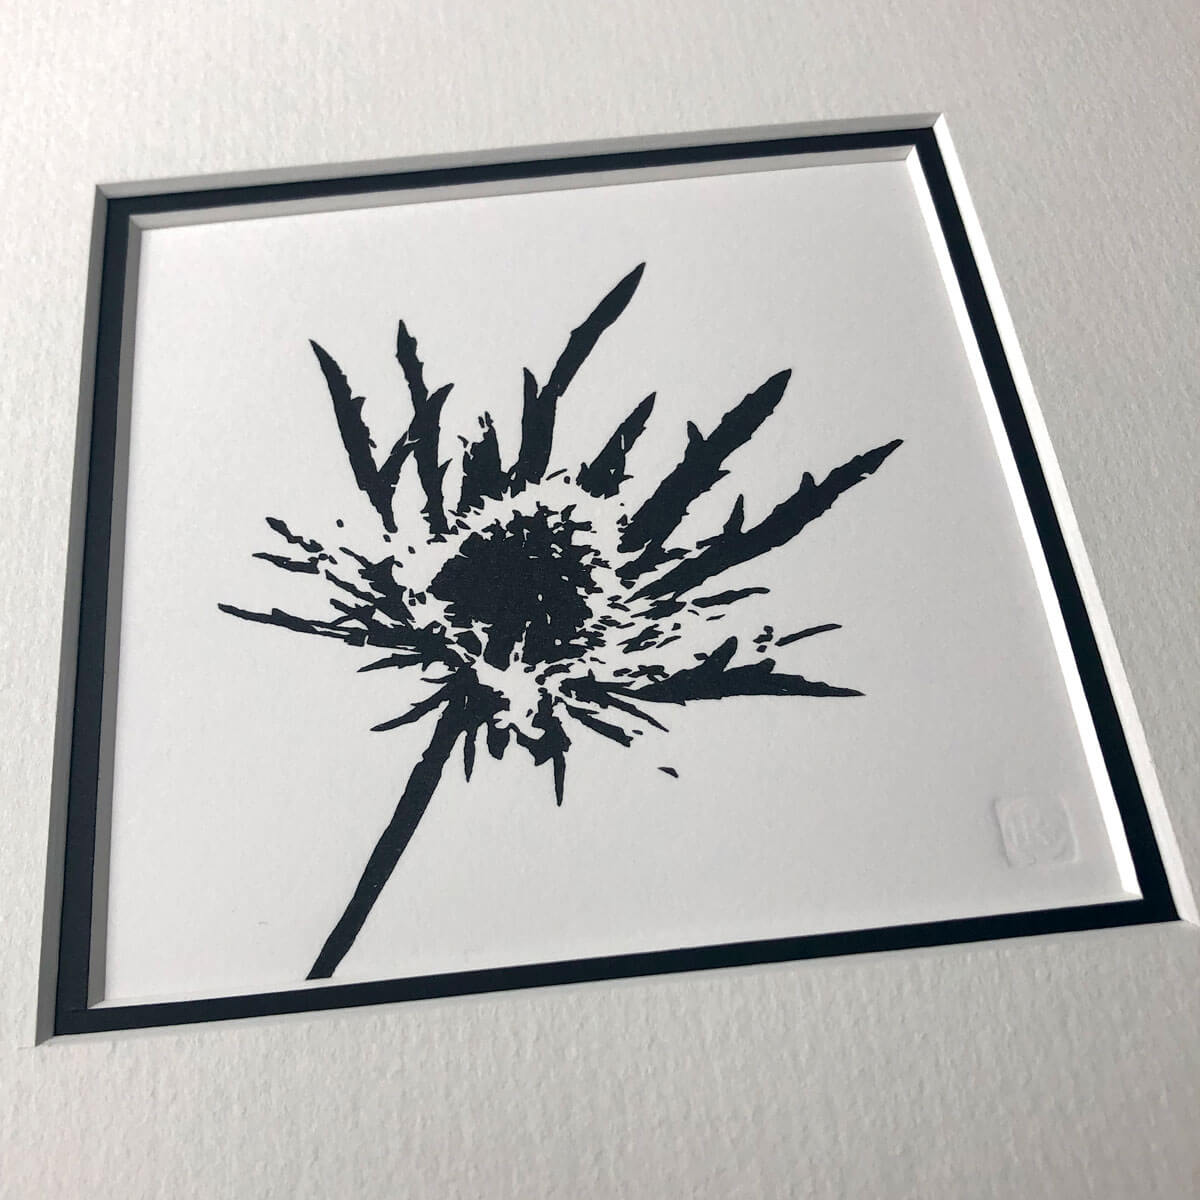 handmade woodblock print of a sea holly flowerhead in pure black against plain pale background